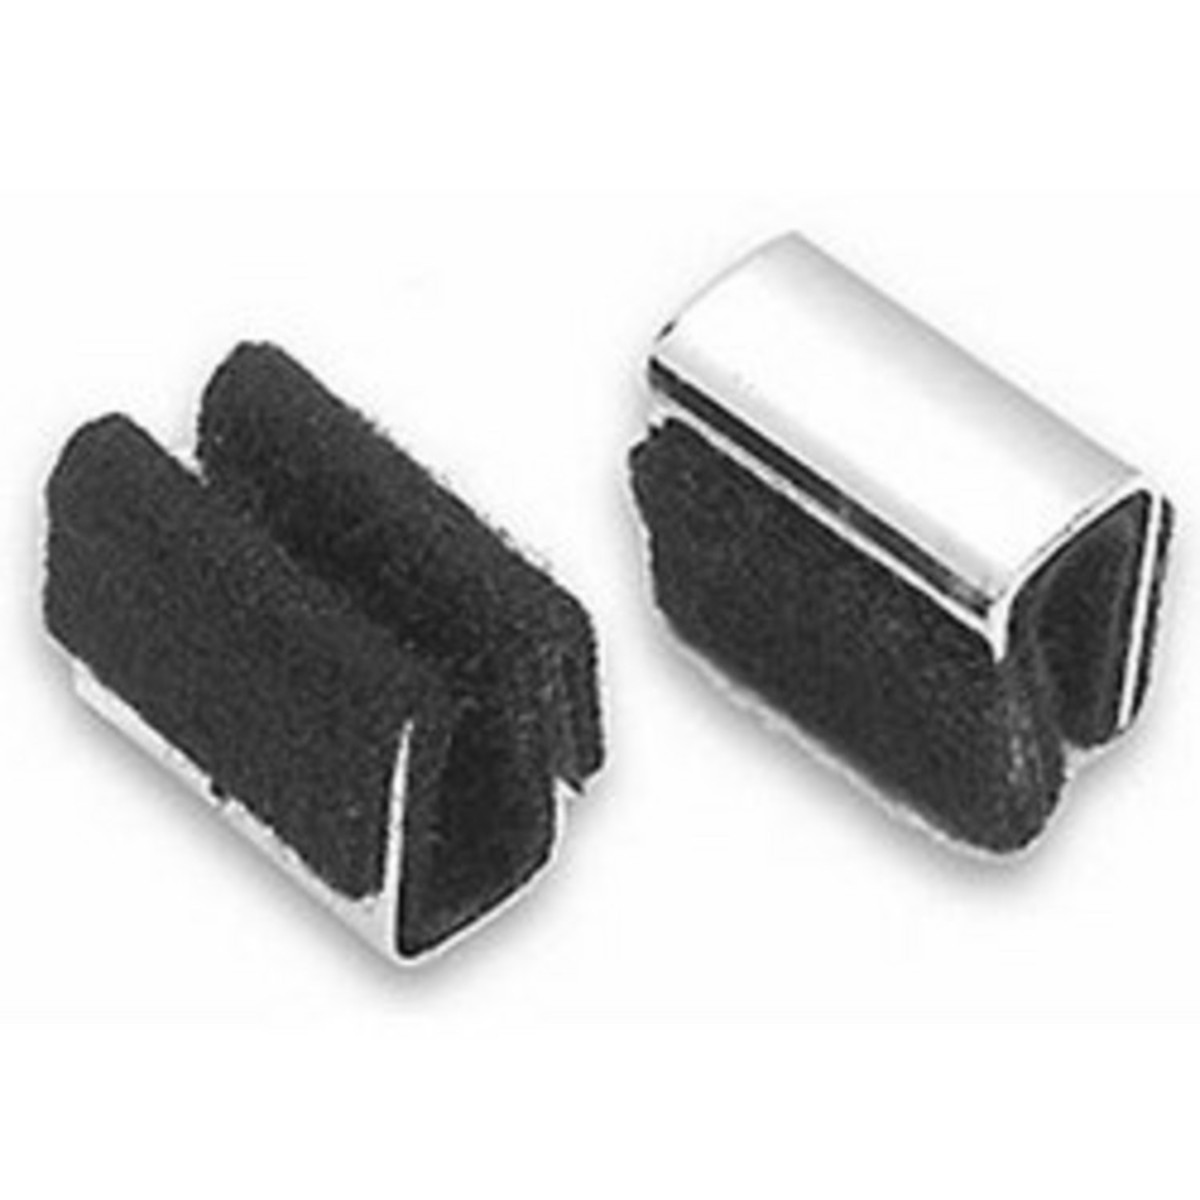 Image of Fishman Pair Of Felted U-Clips For Upright Bass